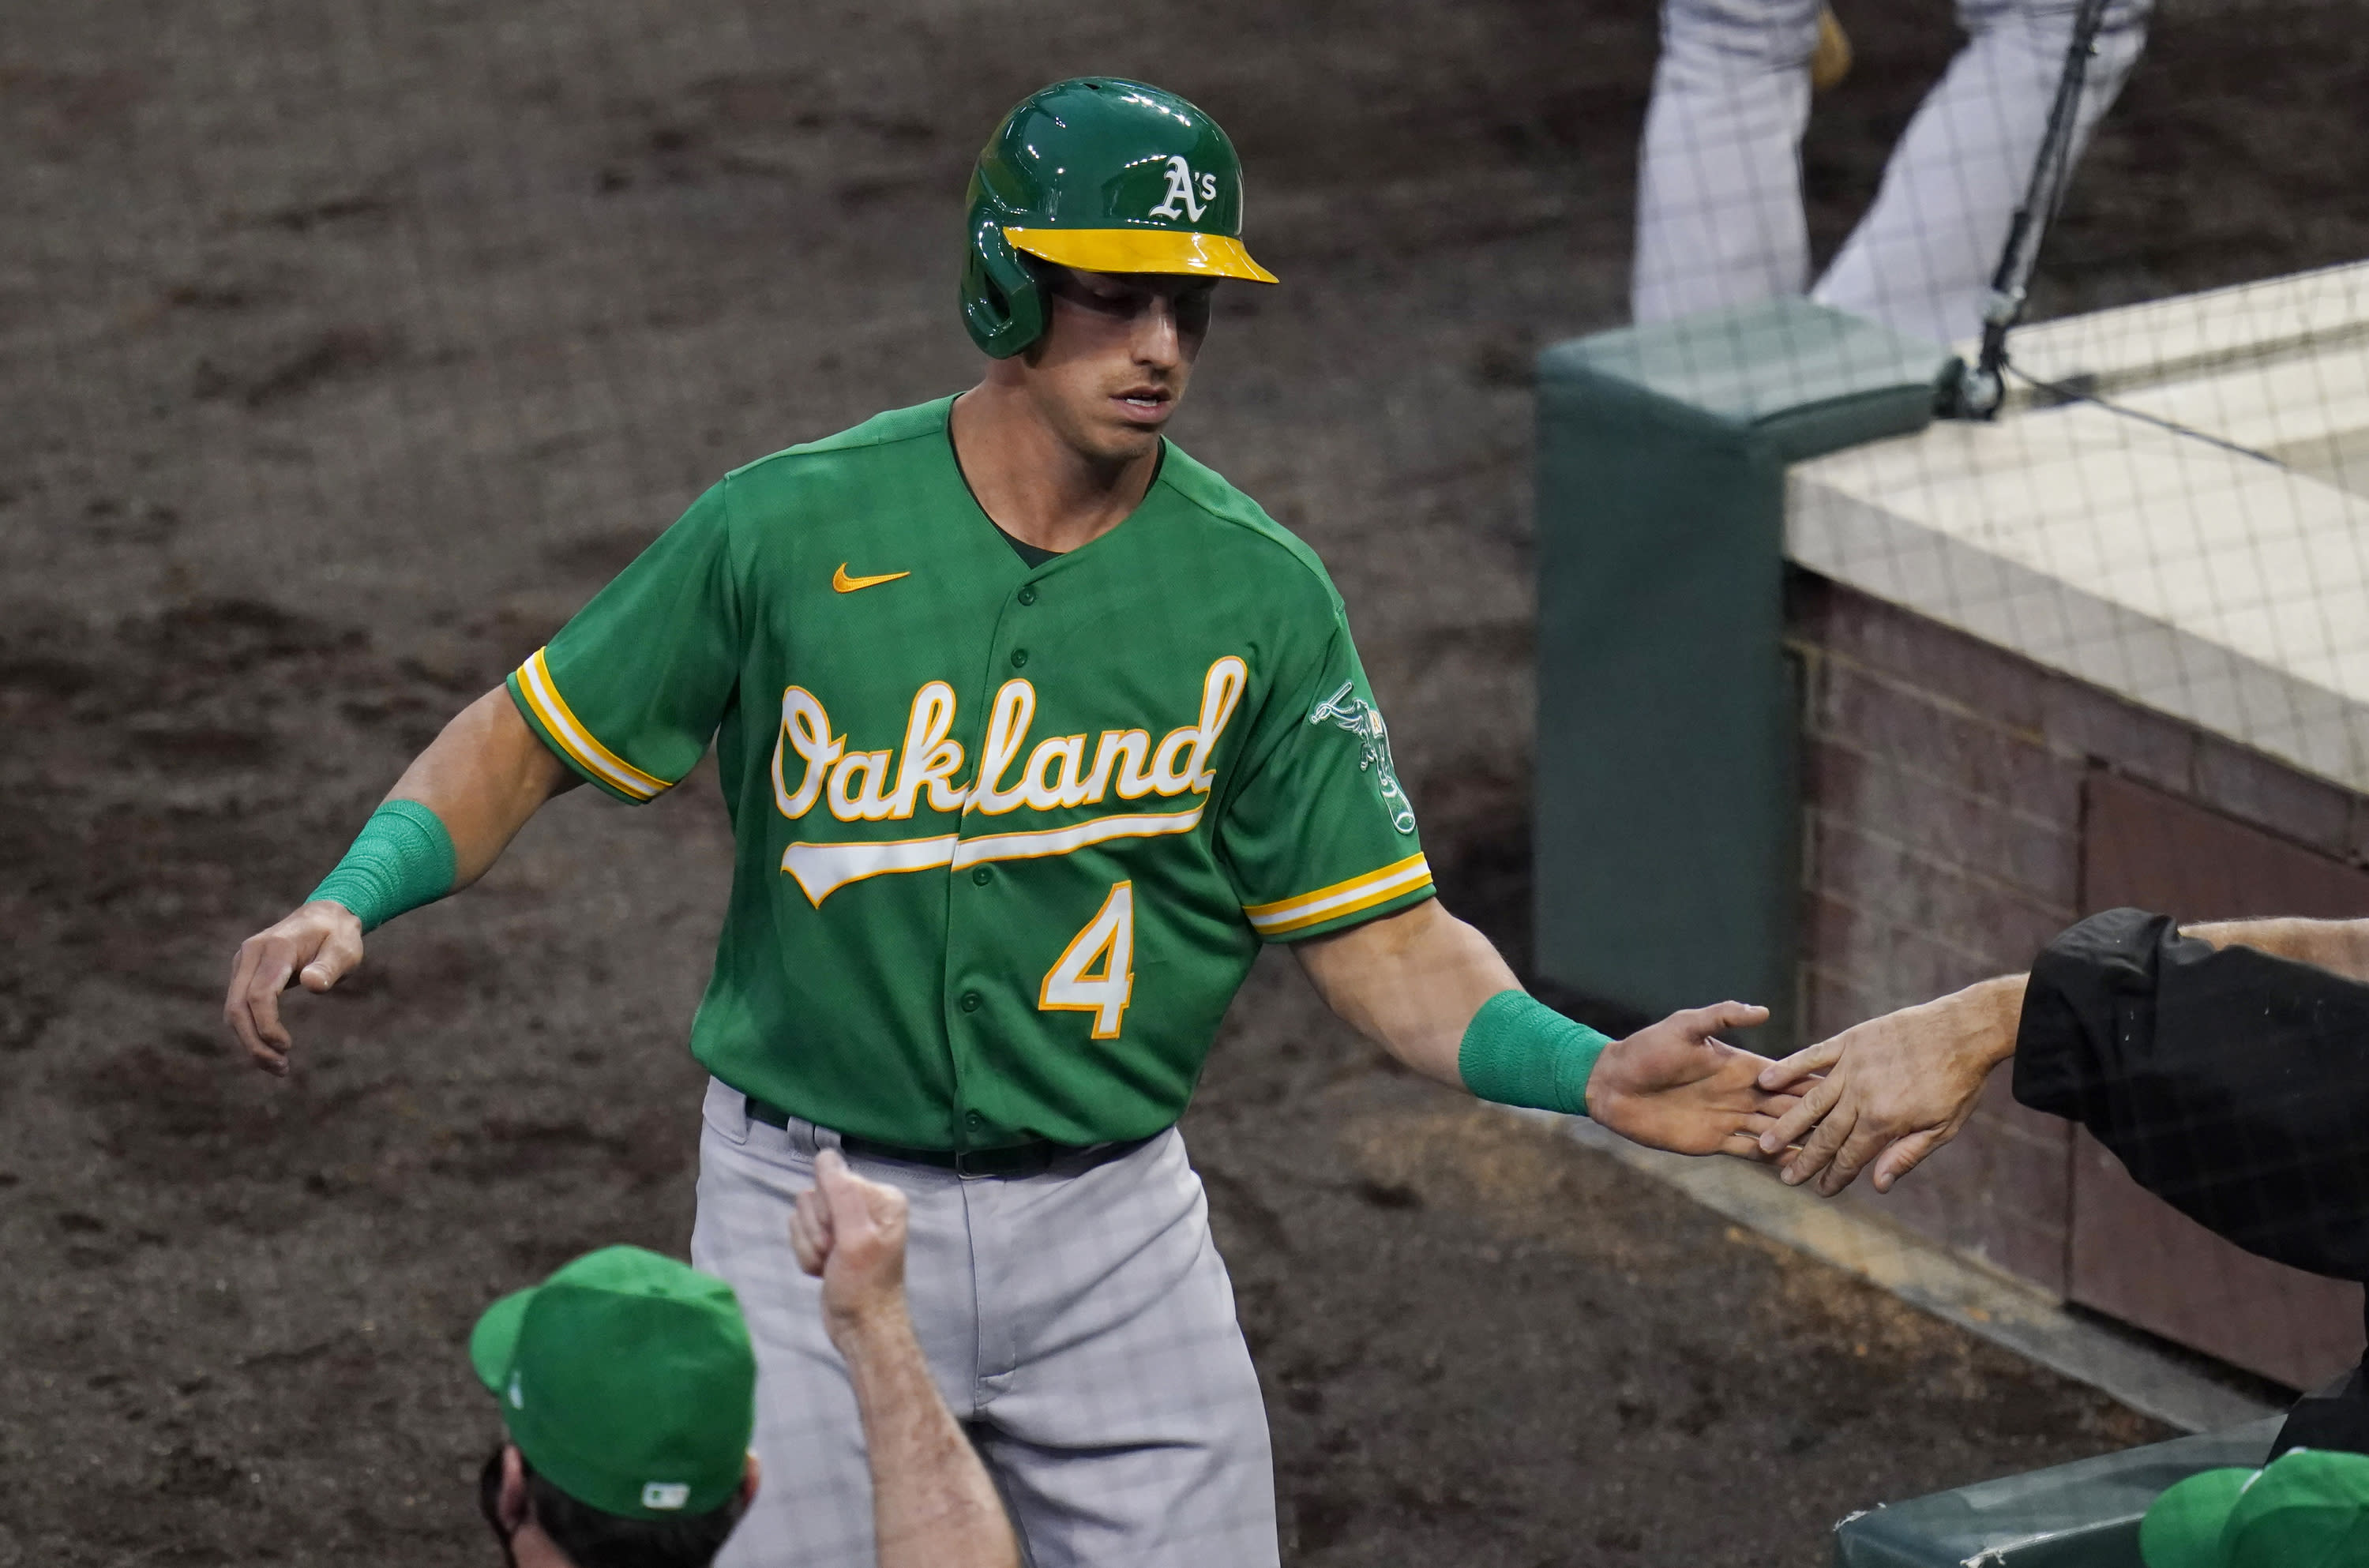 Oakland Athletics' Jake Lamb is congratulated after scoring against the Colorado Rockies during the second inning of a baseball game Tuesday, Sept. 15, 2020, in Denver. (AP Photo/Jack Dempsey)